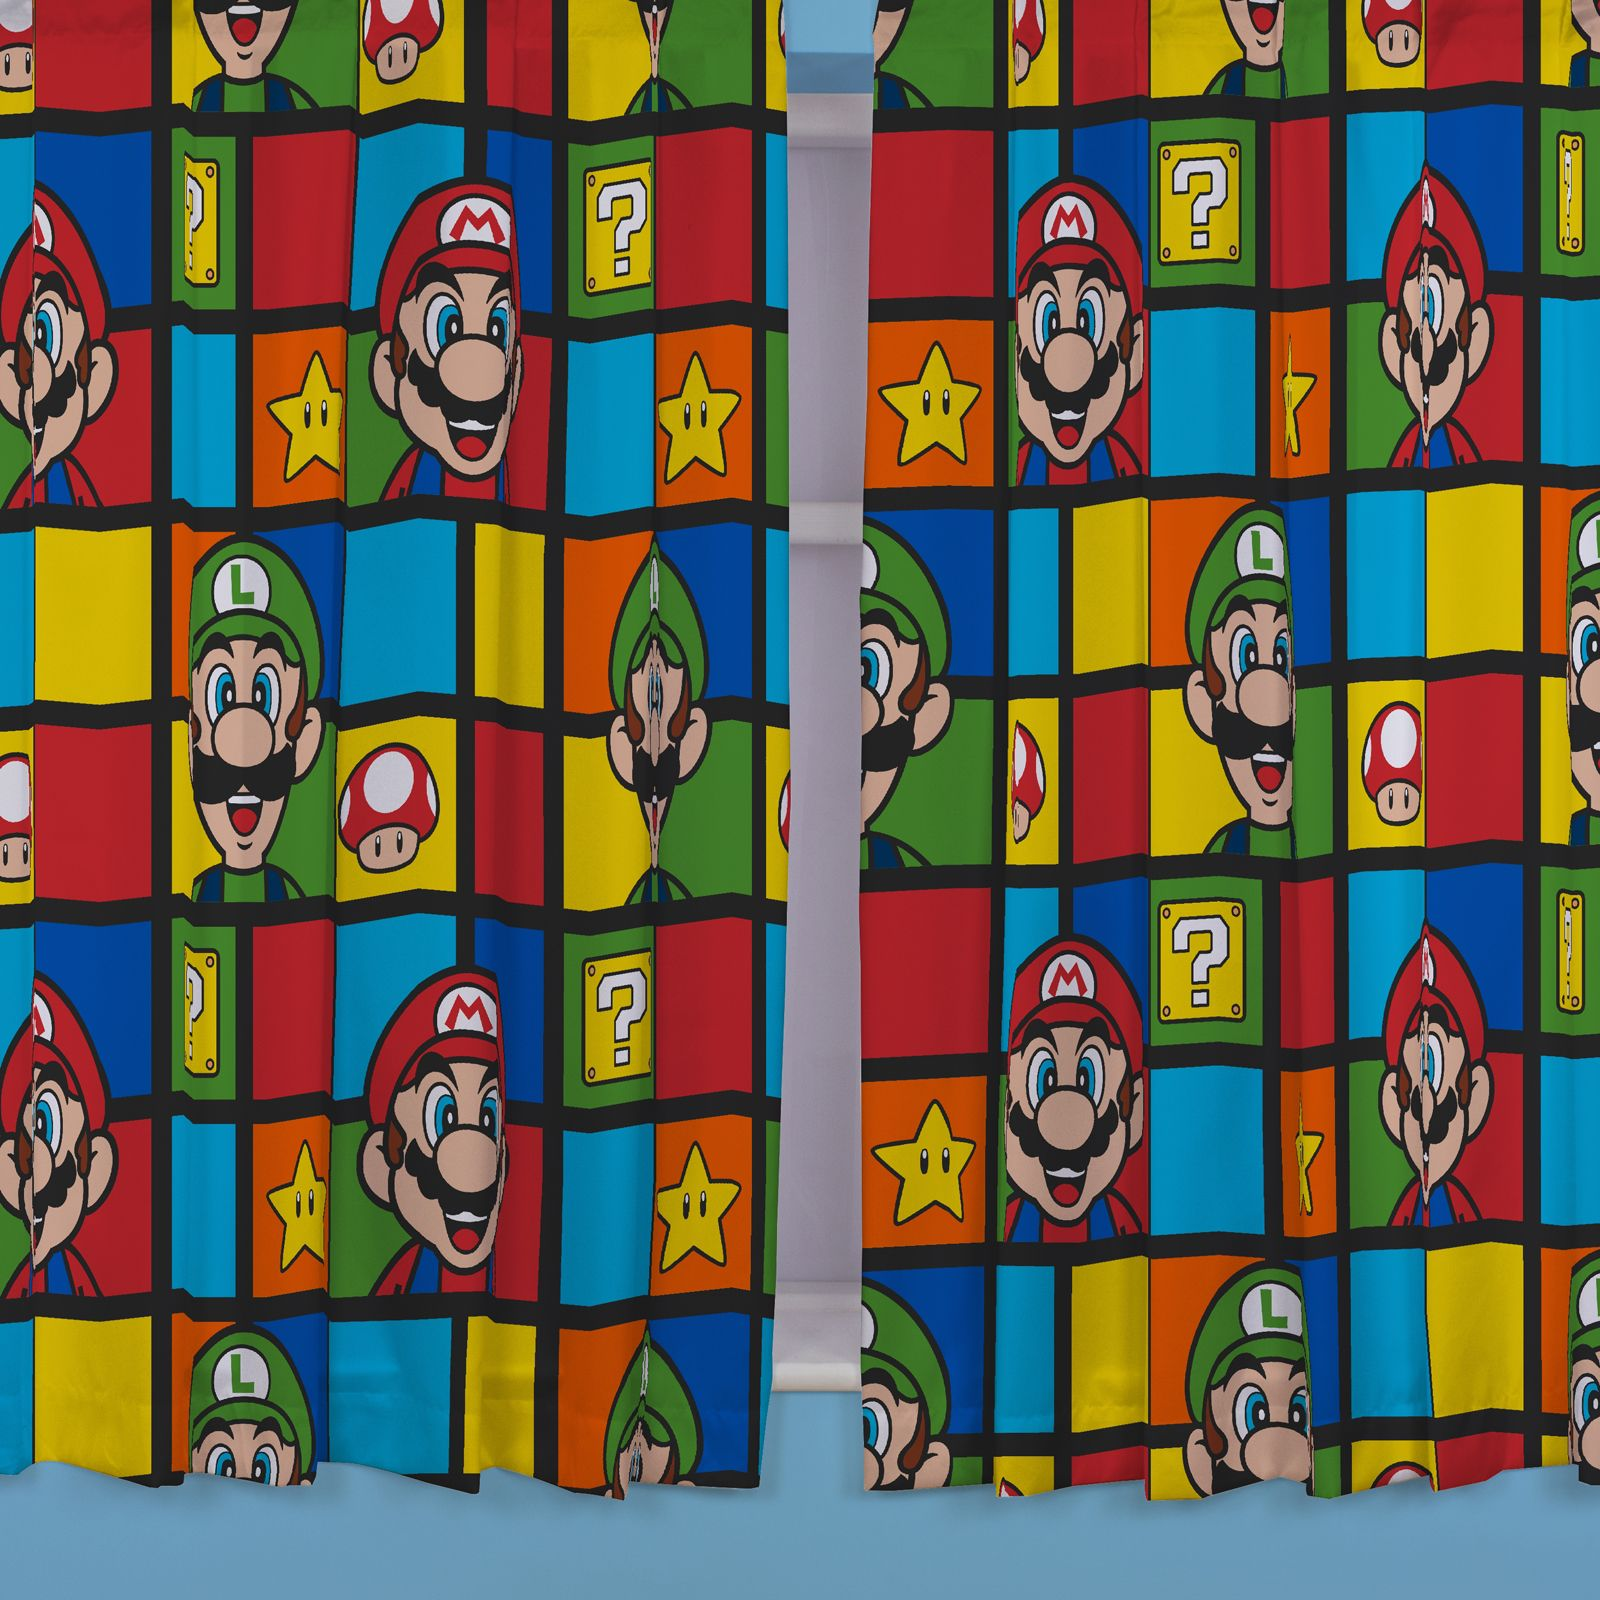 OFFICIAL NINTENDO SUPER MARIO BROTHERS BEDDING DUVET COVER. OFFICIAL NINTENDO SUPER MARIO BROTHERS BEDDING DUVET COVER SETS